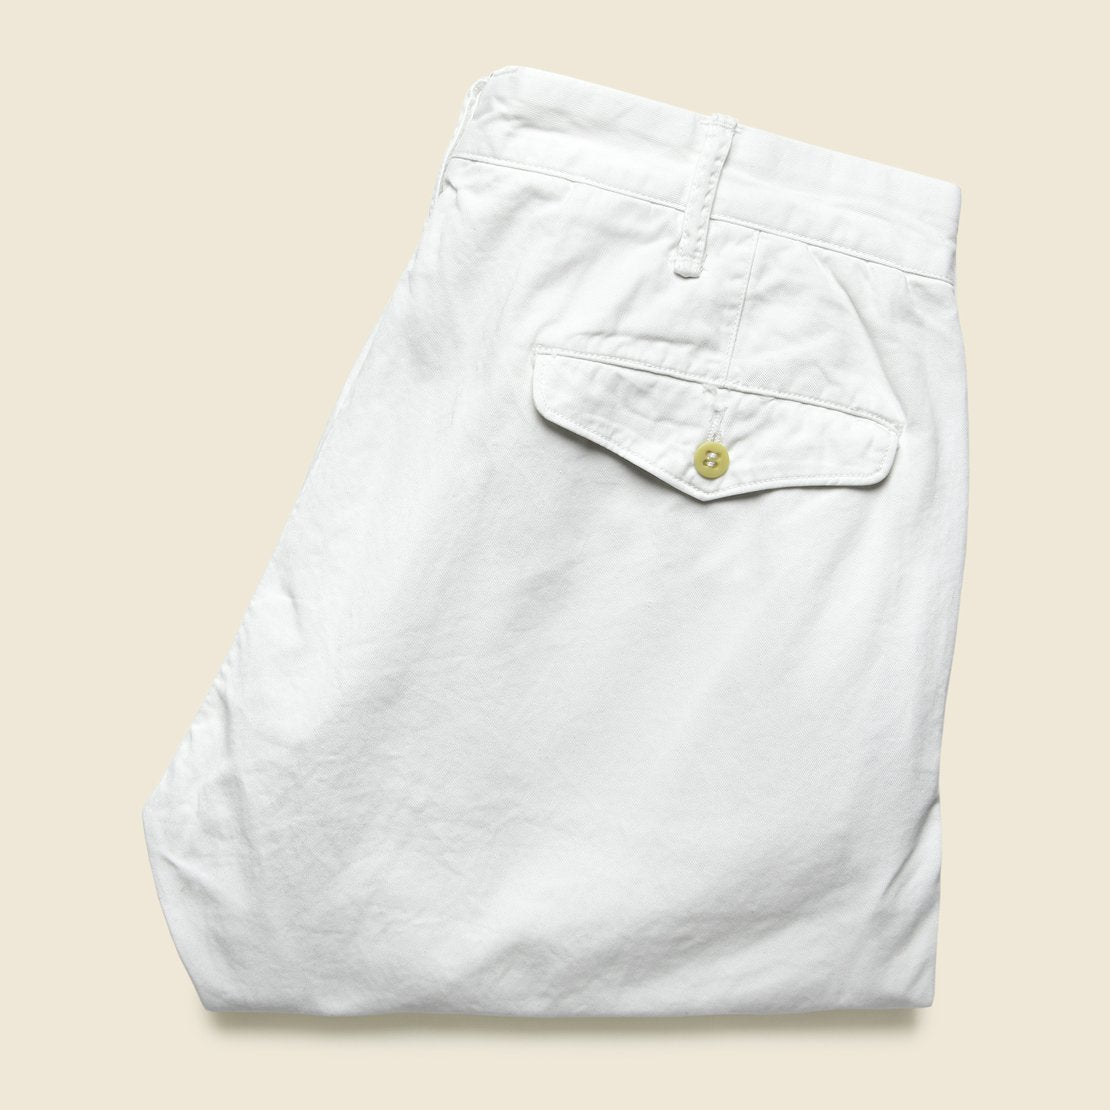 RRL Twill Slim Chino - White